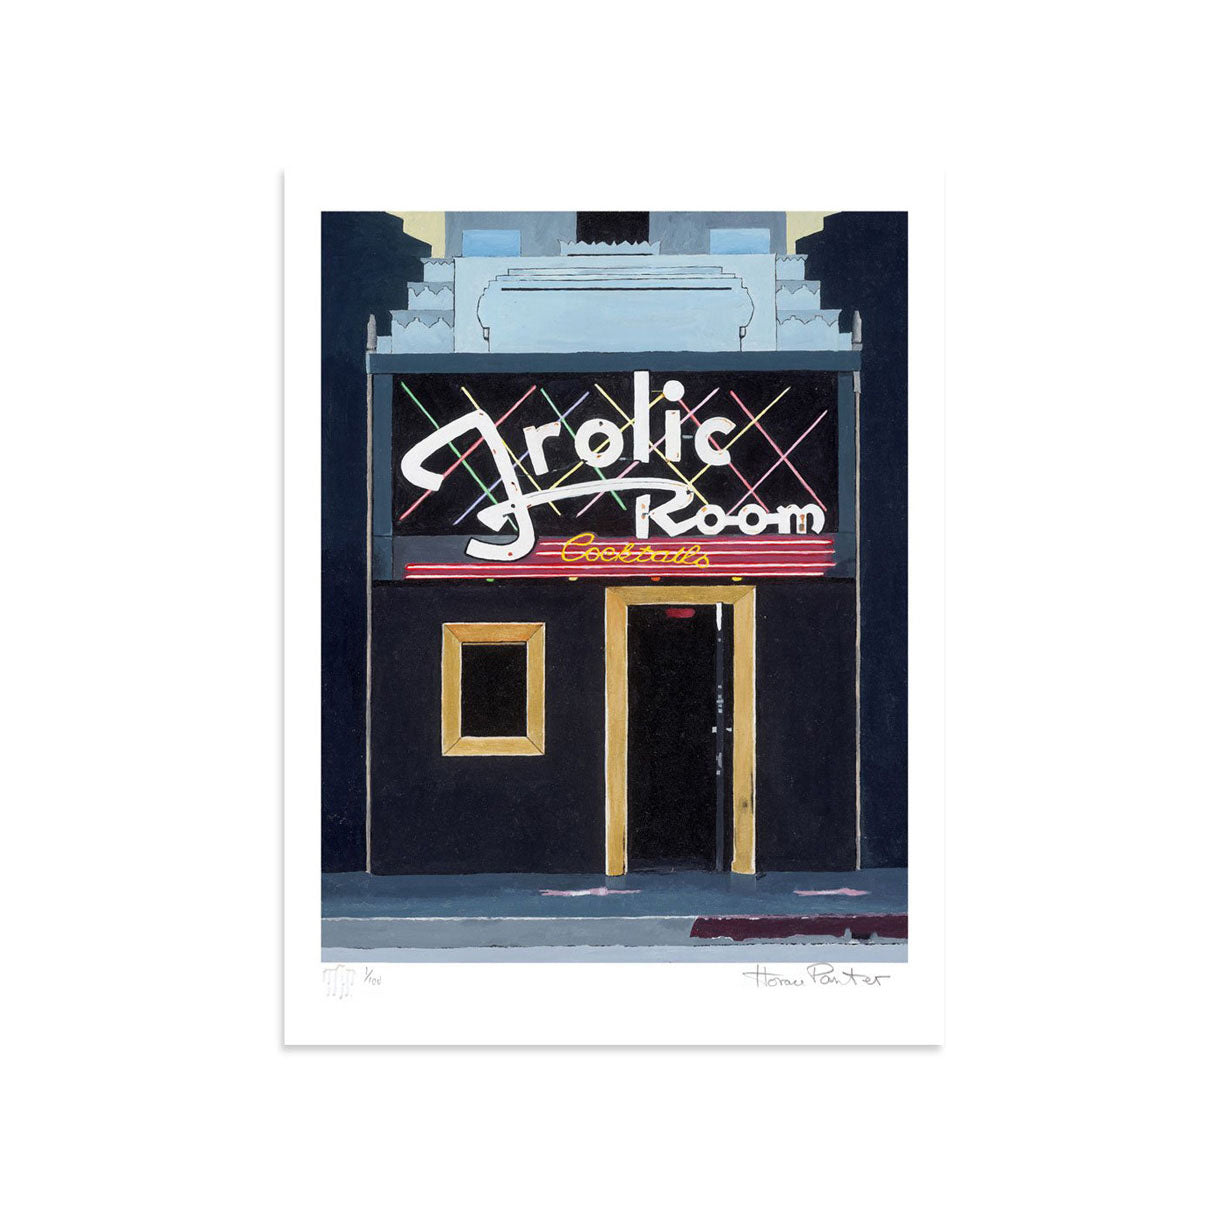 Frolic Room by Horace Panter | Print | Poster Child Prints